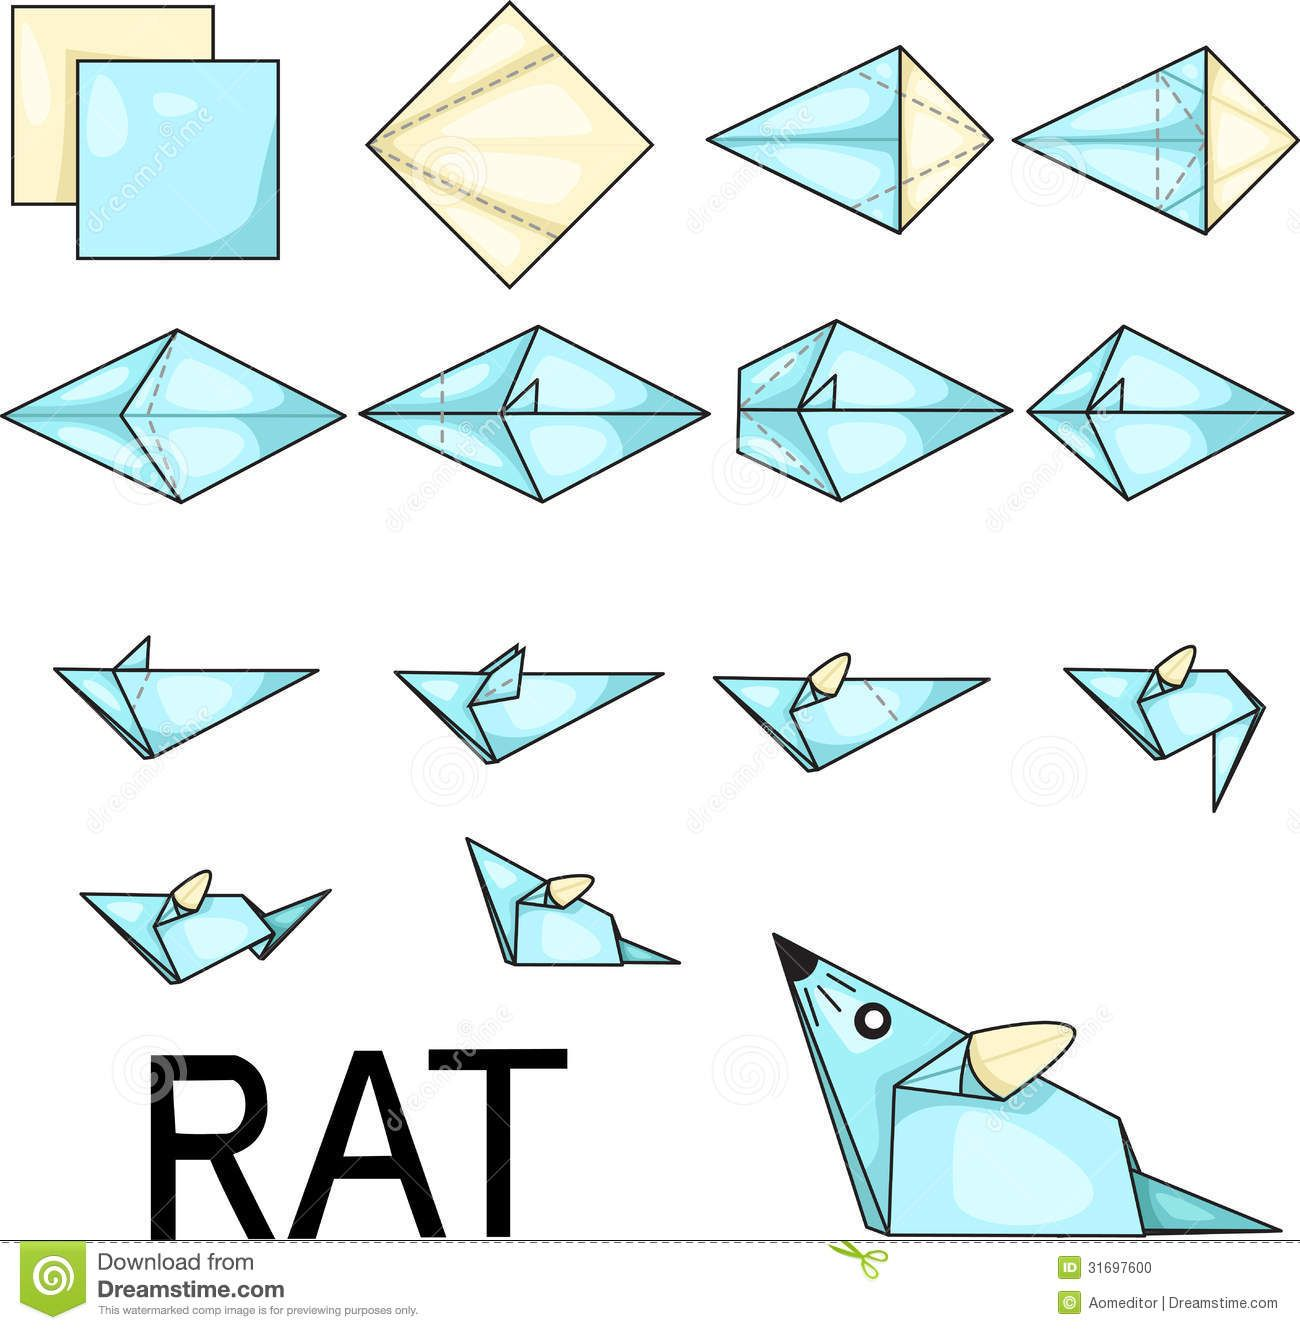 Origami rat stock photo image 31697600 for art pinterest origami rat stock photo image 31697600 jeuxipadfo Images